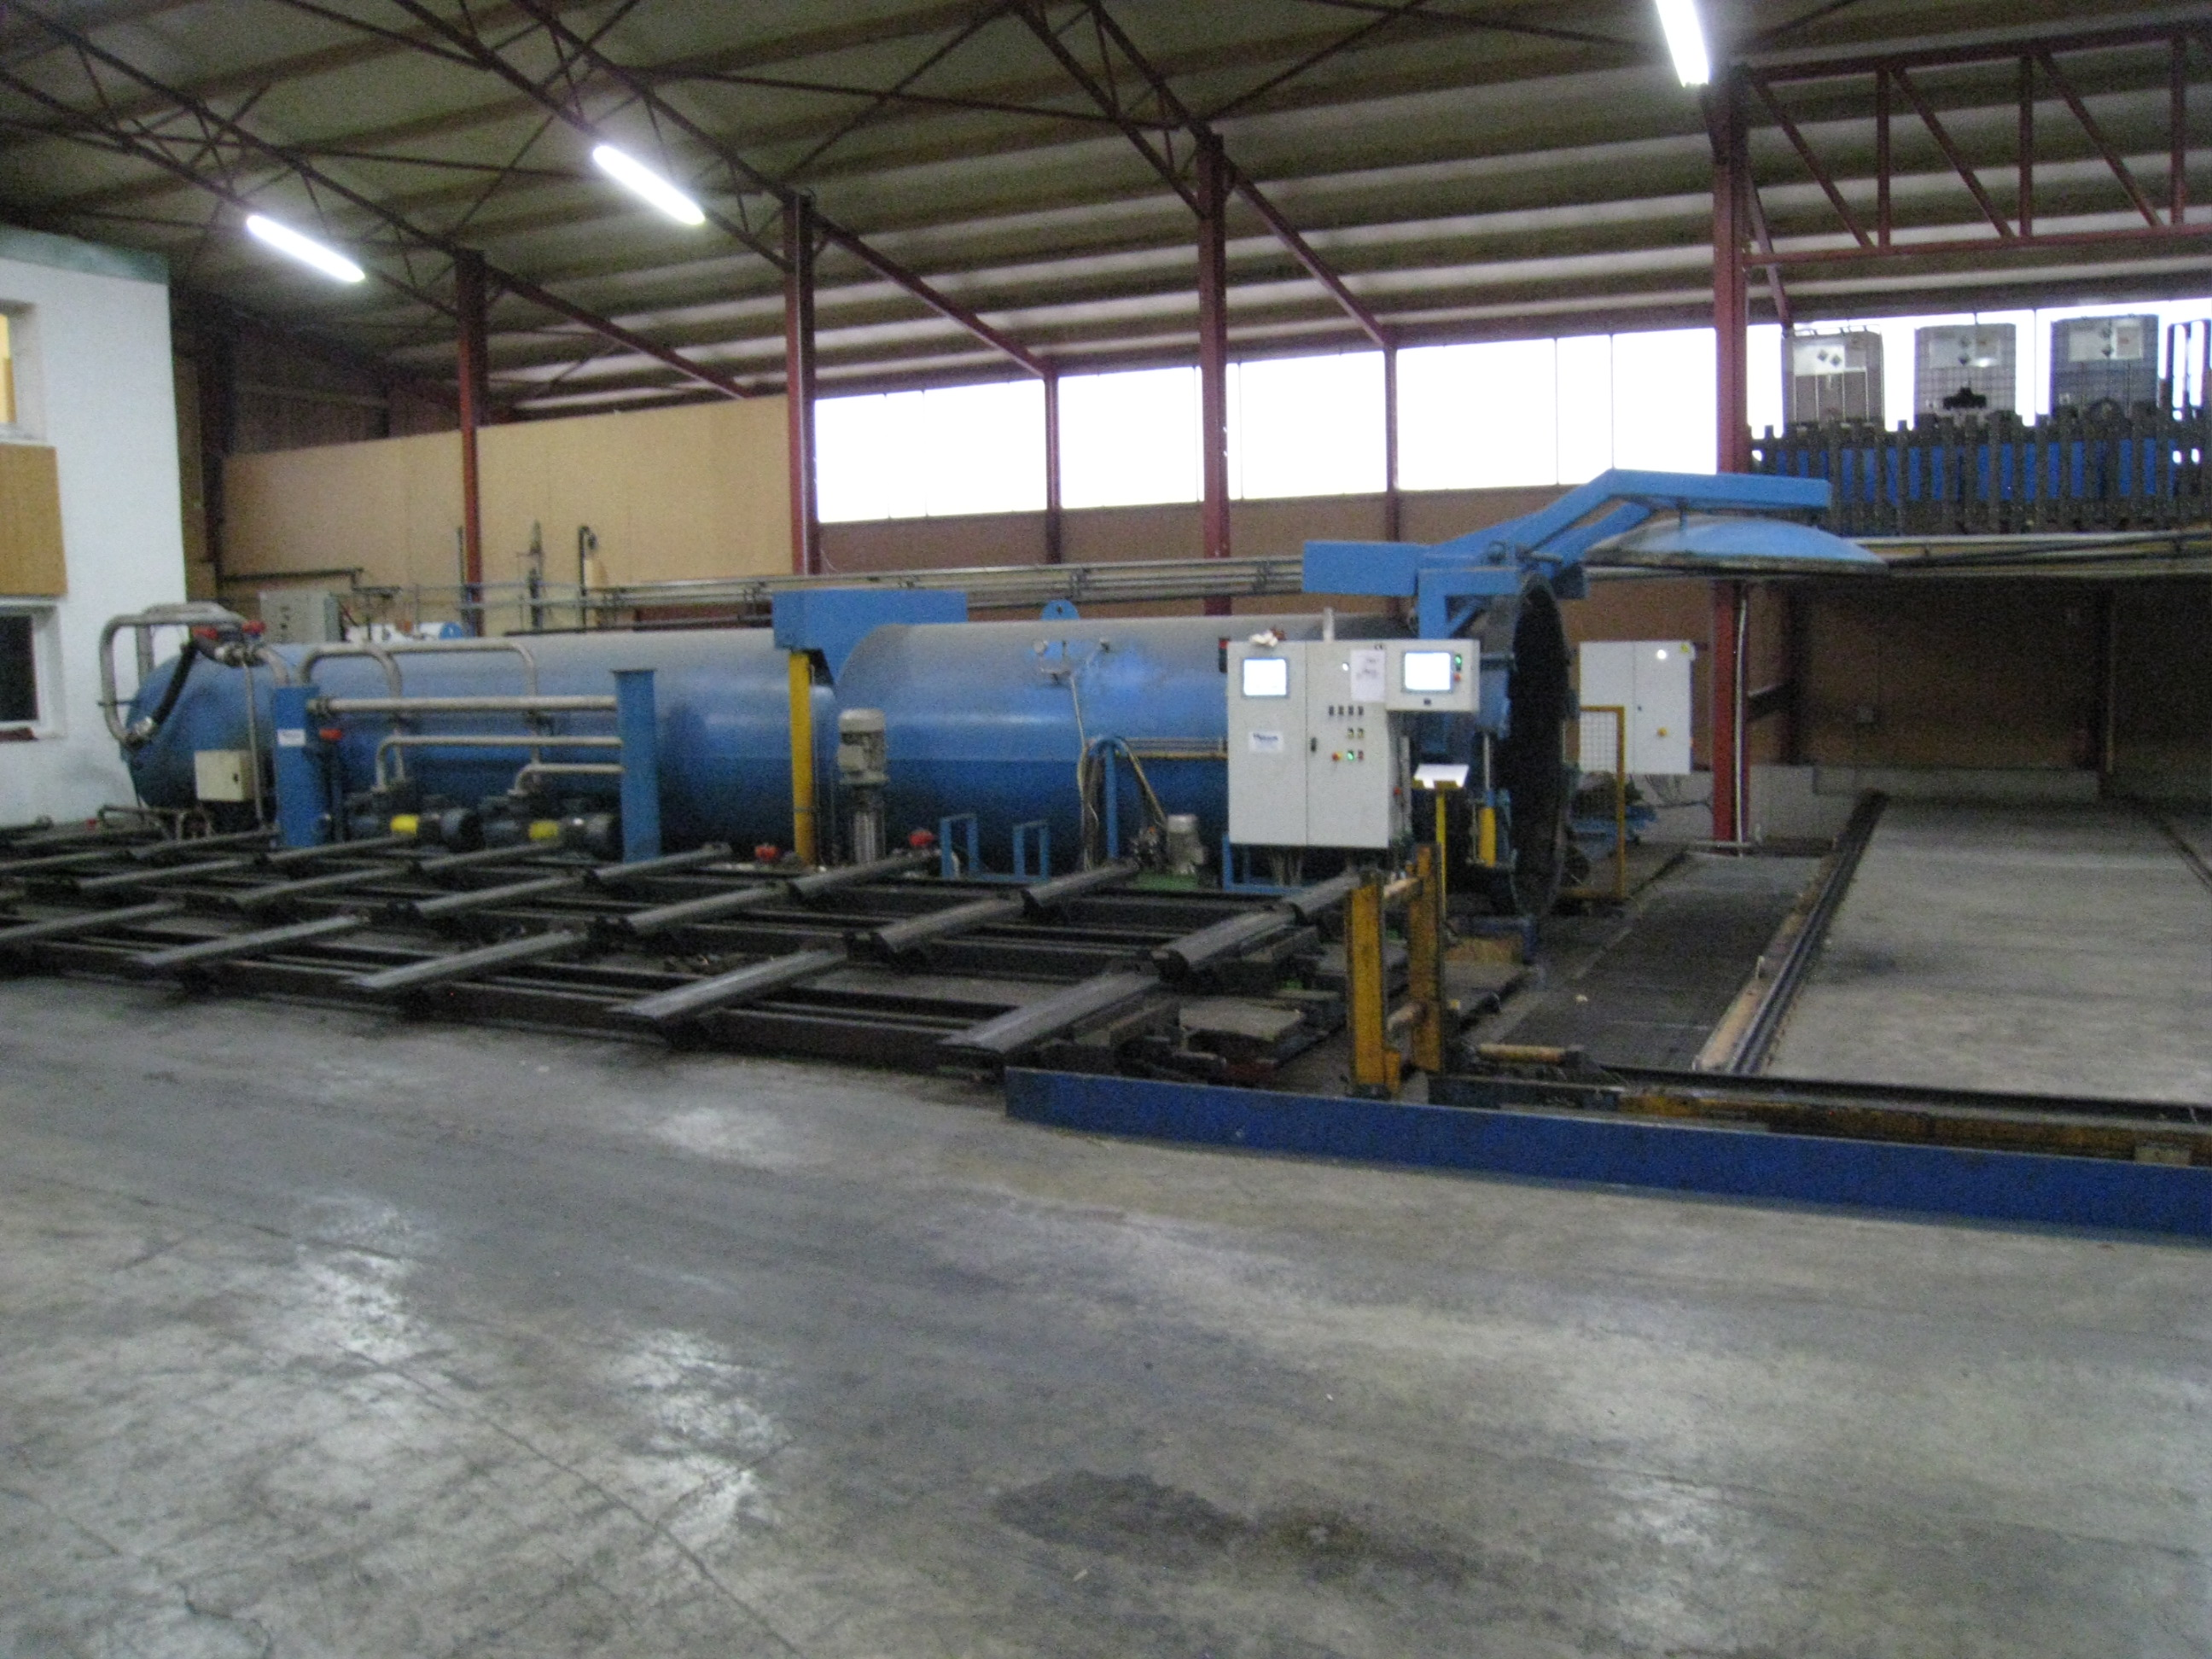 Automatic loading system (5)